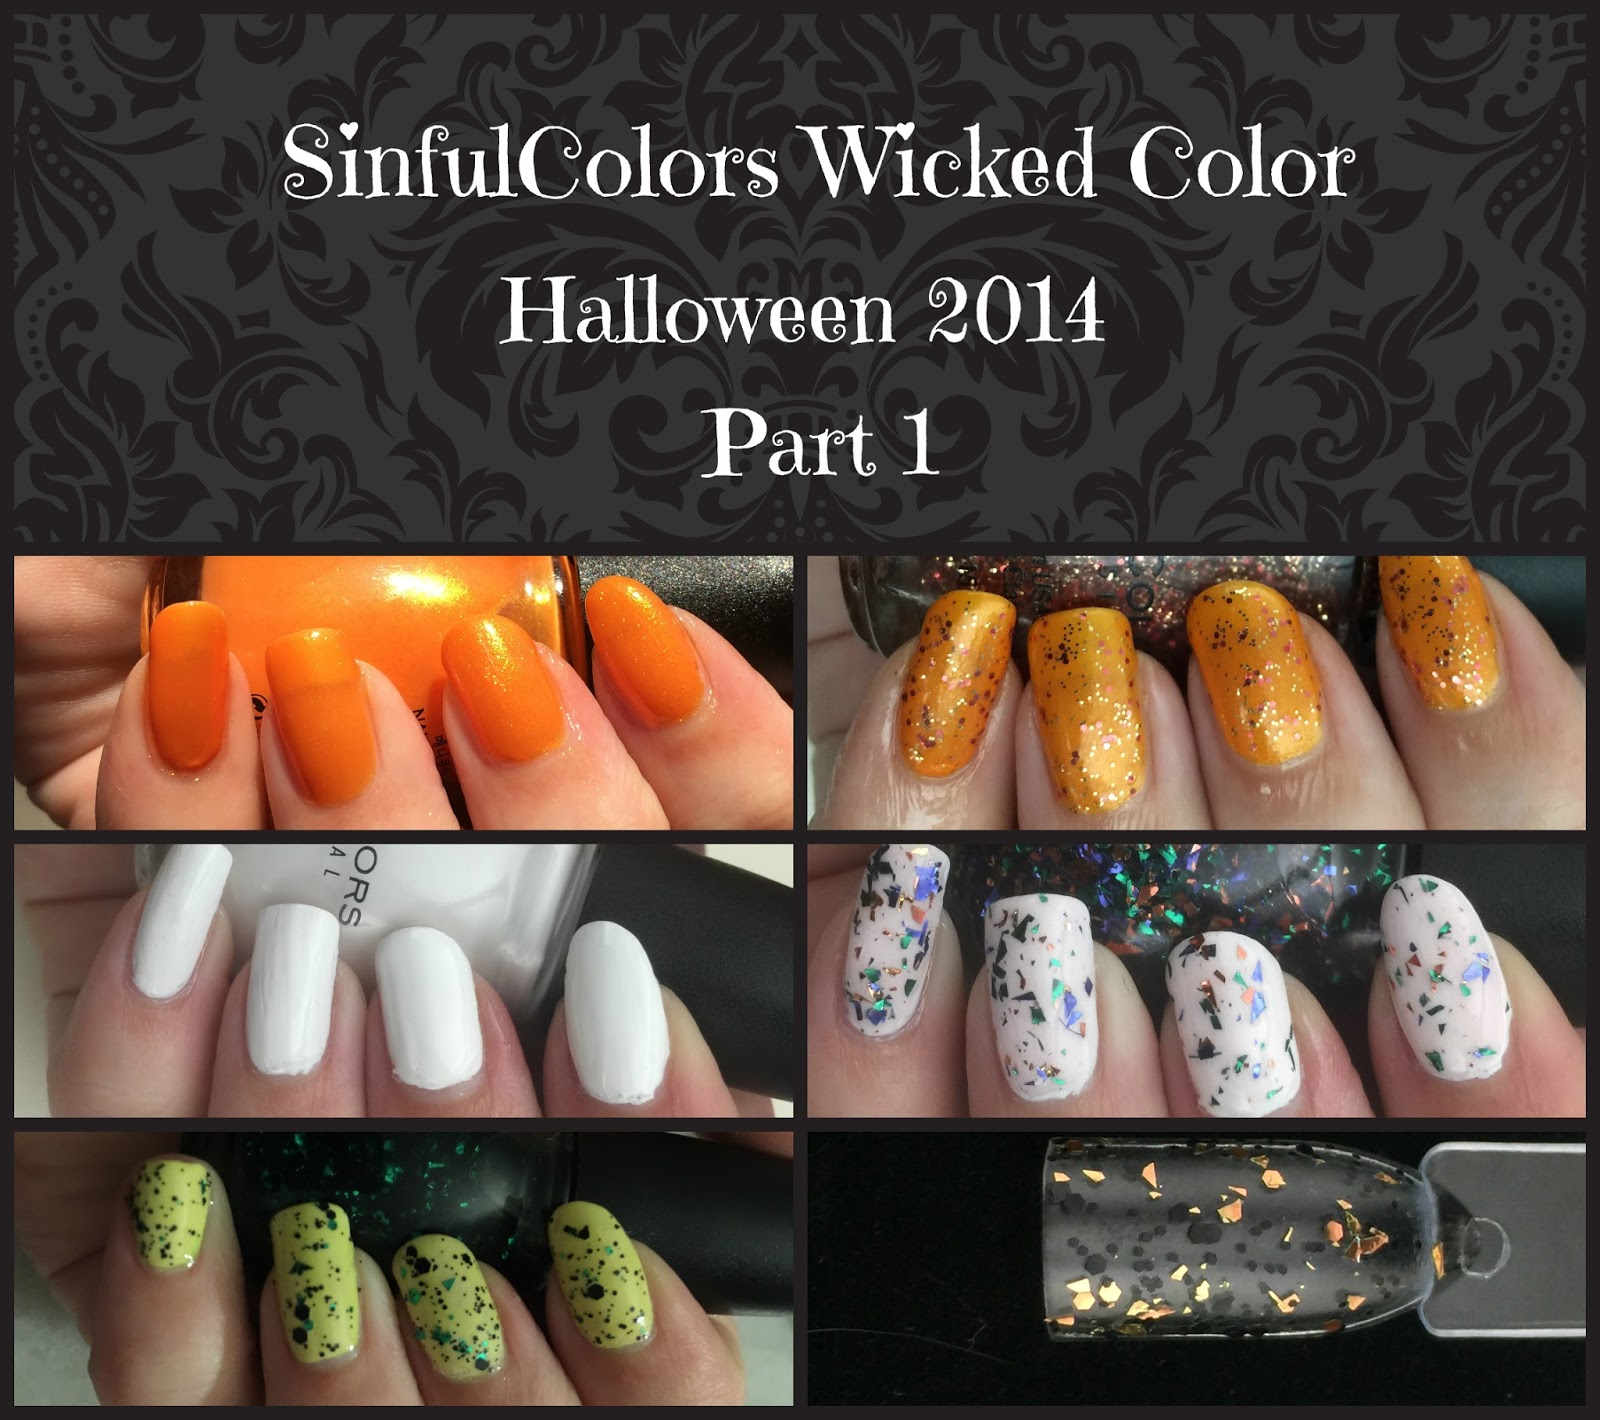 SinfulColors Halloween 2014 Wicked color